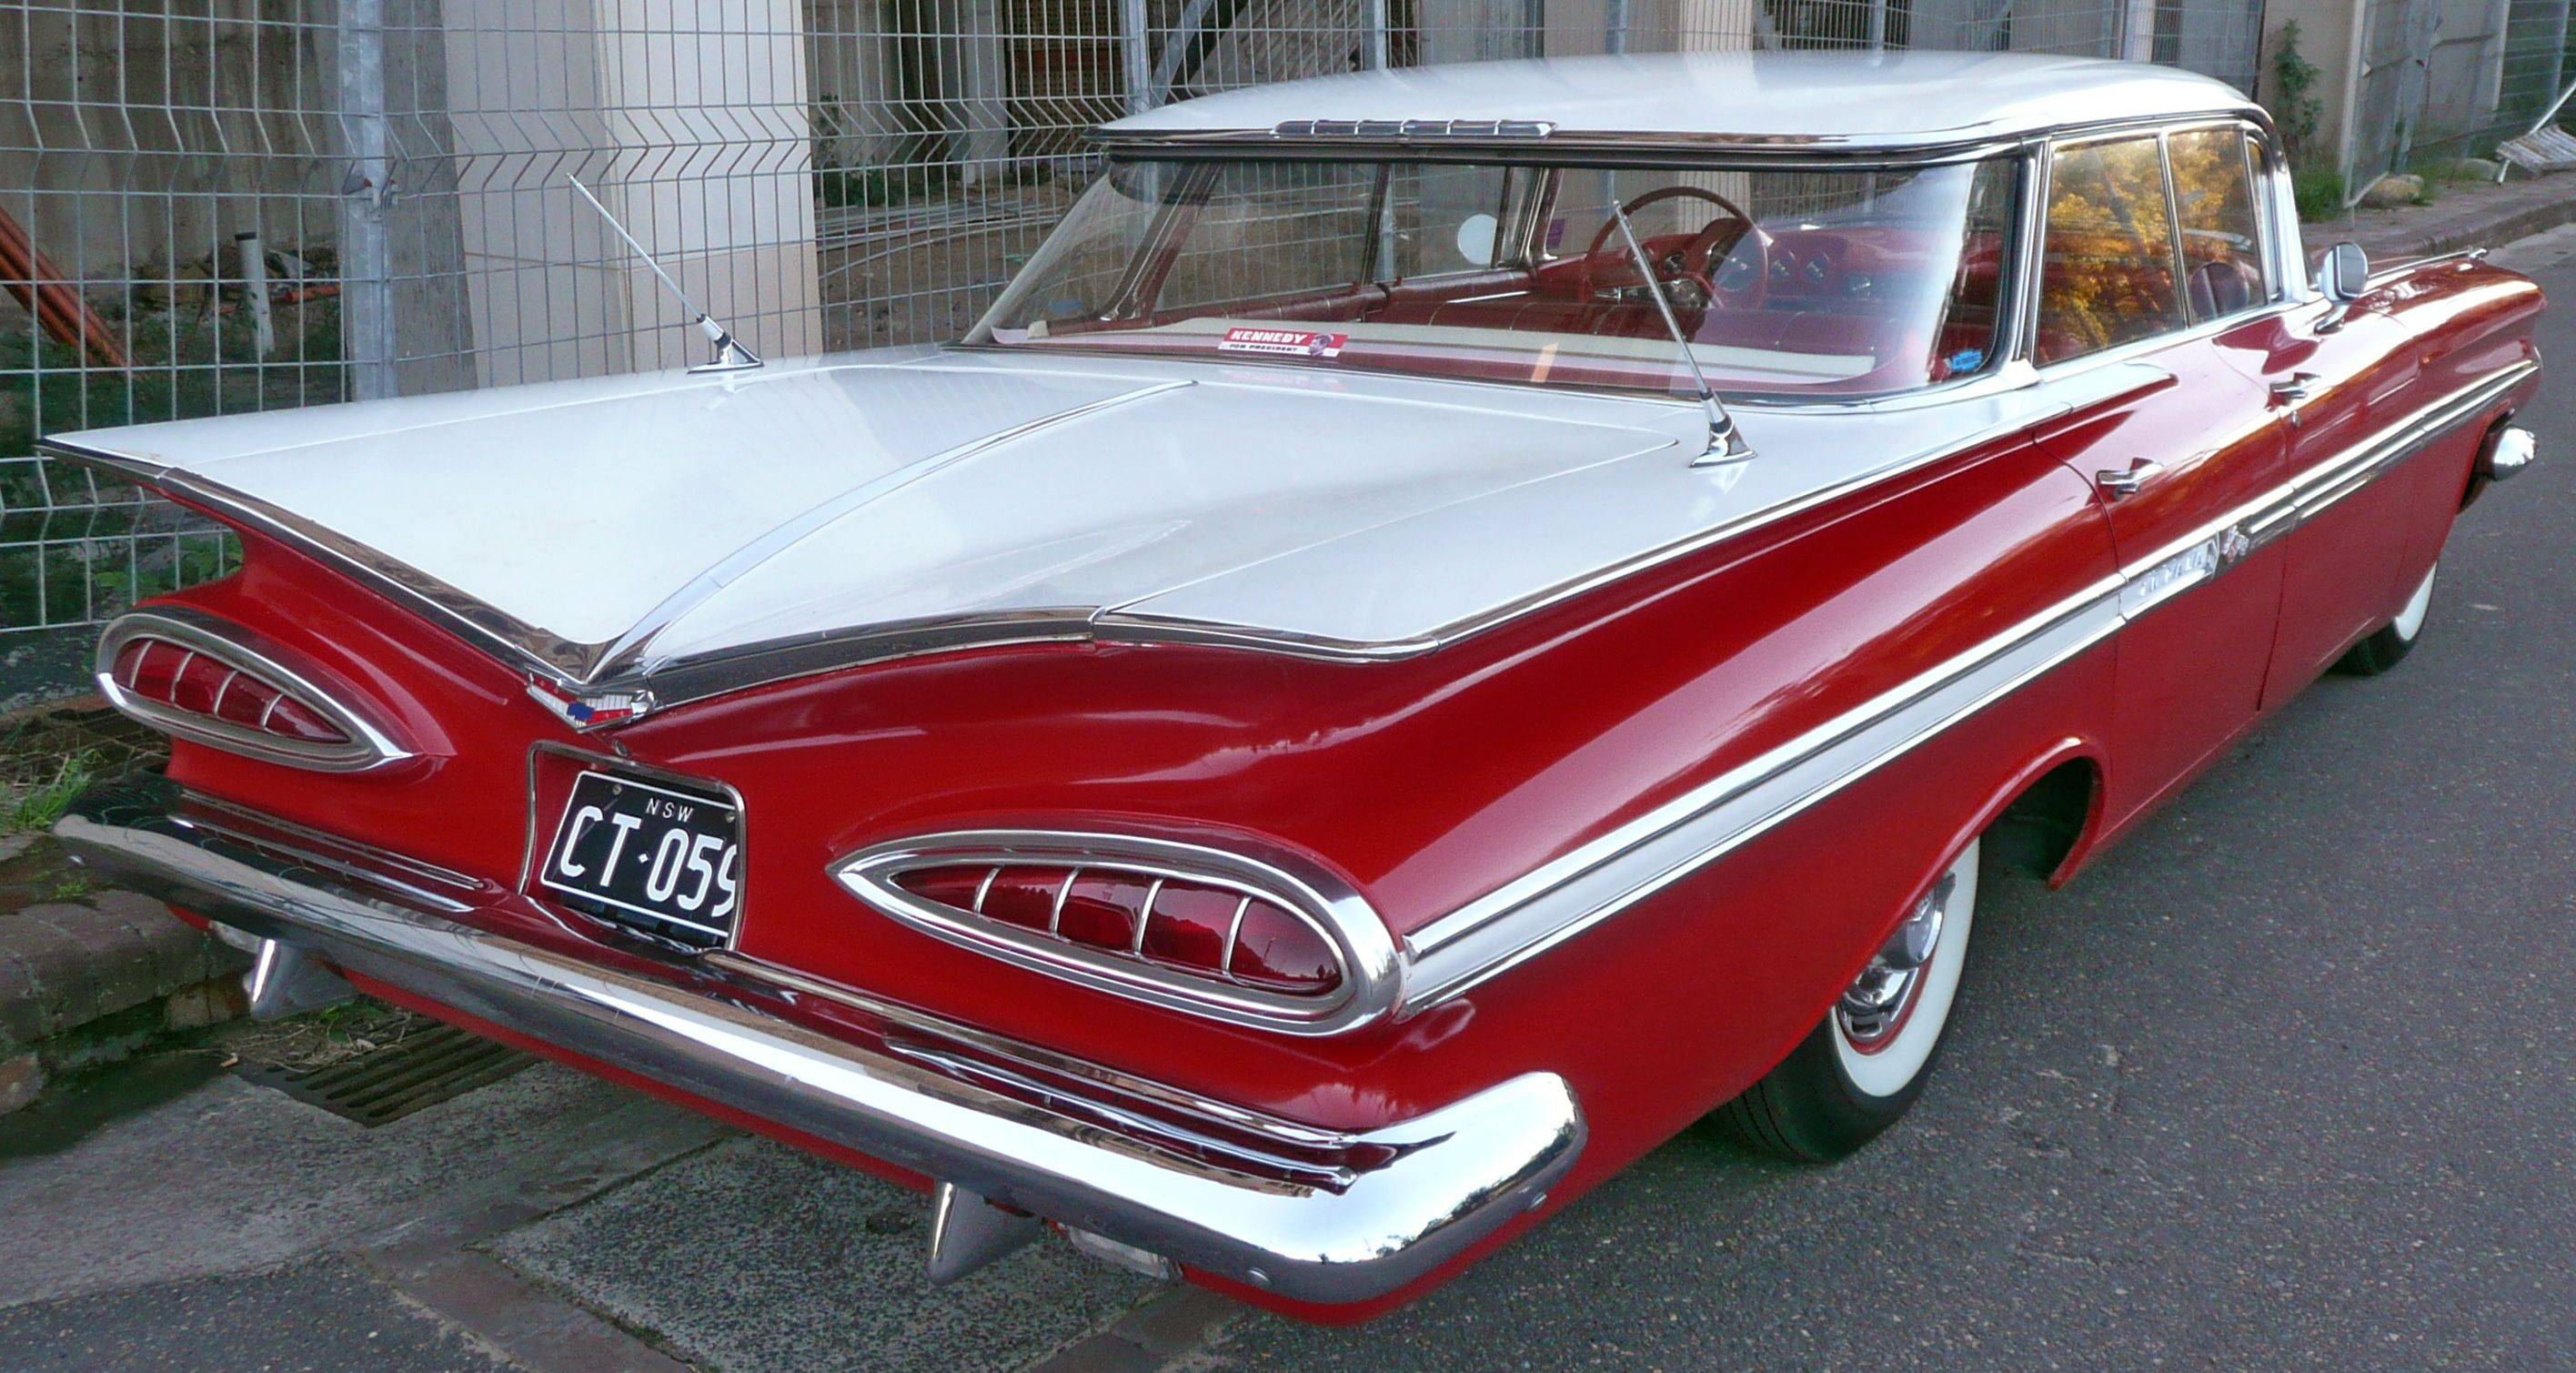 1959 chevy impala vintage car kings of car hire pinterest voitures voitures anciennes. Black Bedroom Furniture Sets. Home Design Ideas